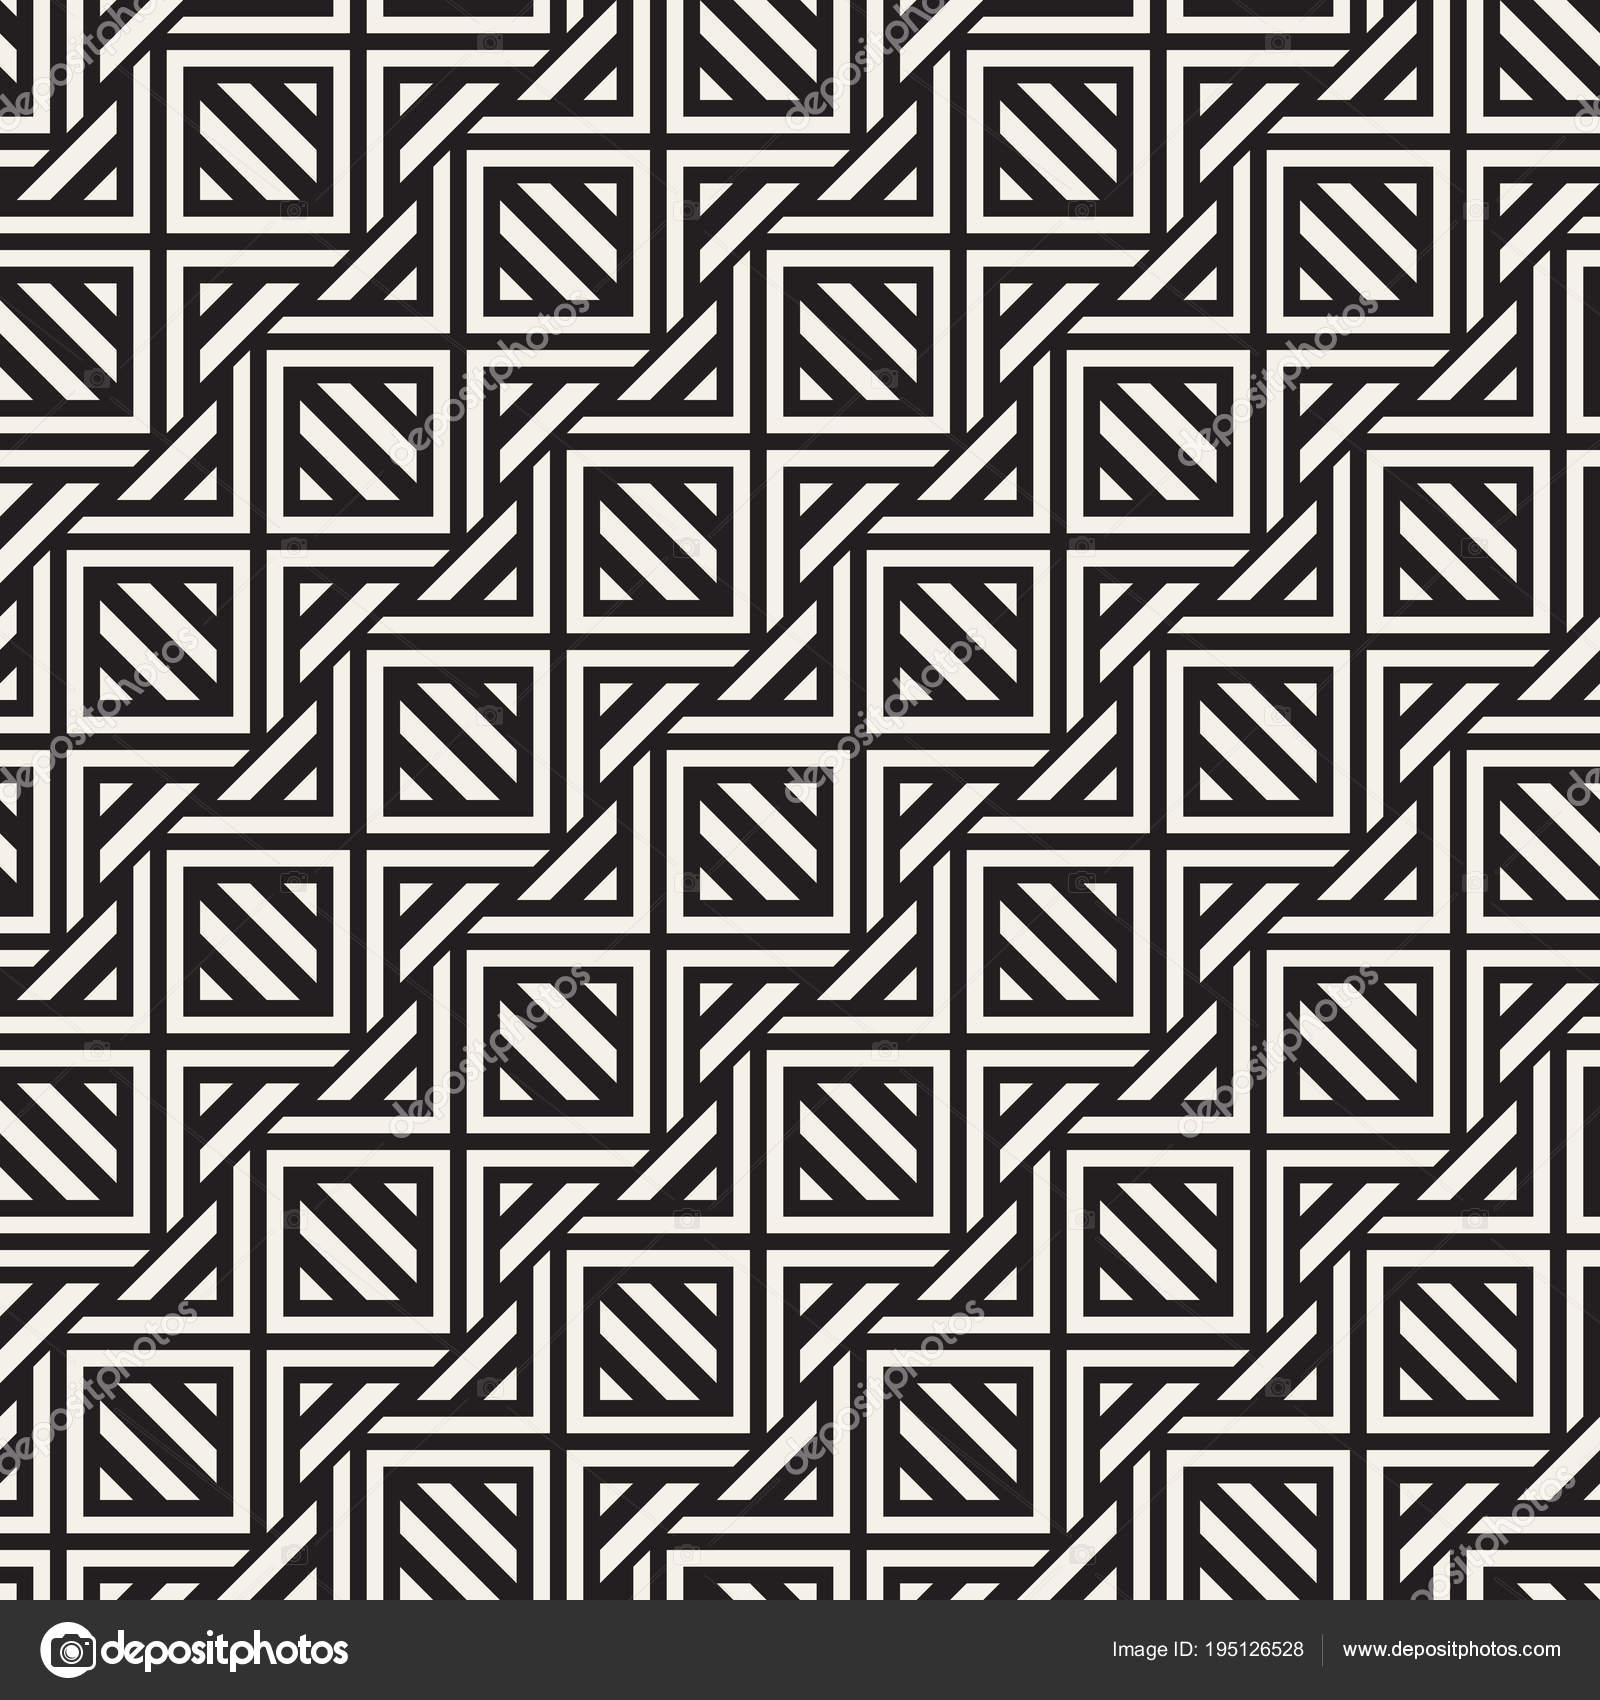 Vector Seamless Pattern Modern Stylish Abstract Texture Repeating Geometric Tile